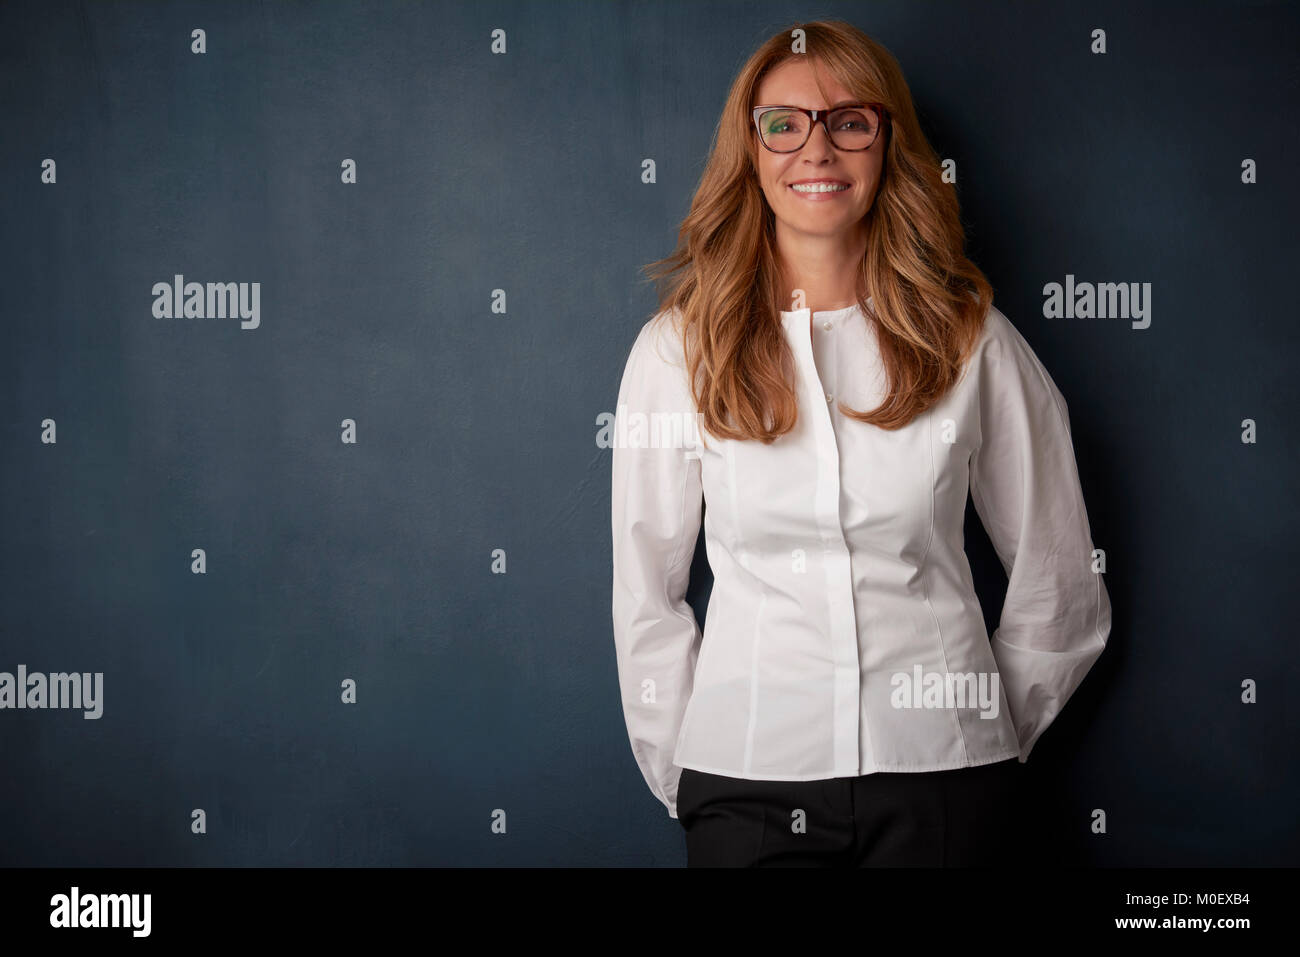 Studio portrait of a laughing beautiful mature woman wearing eyewear and white shirt while standing at dark background. - Stock Image